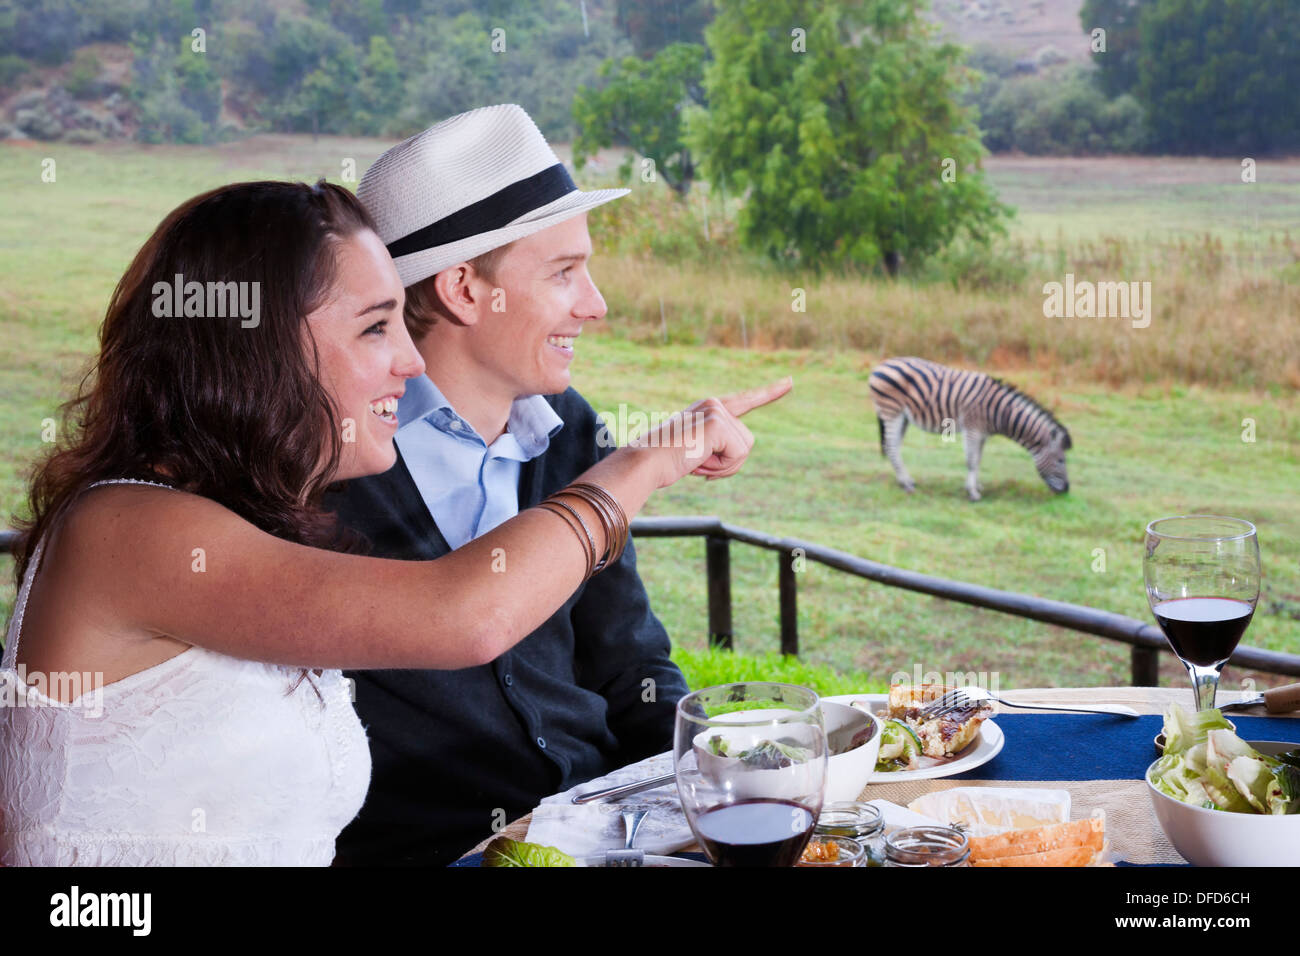 Honeymooning couple in late twenties eating picnic lunch outdoors with zebras in background, Winelands, South Africa - Stock Image